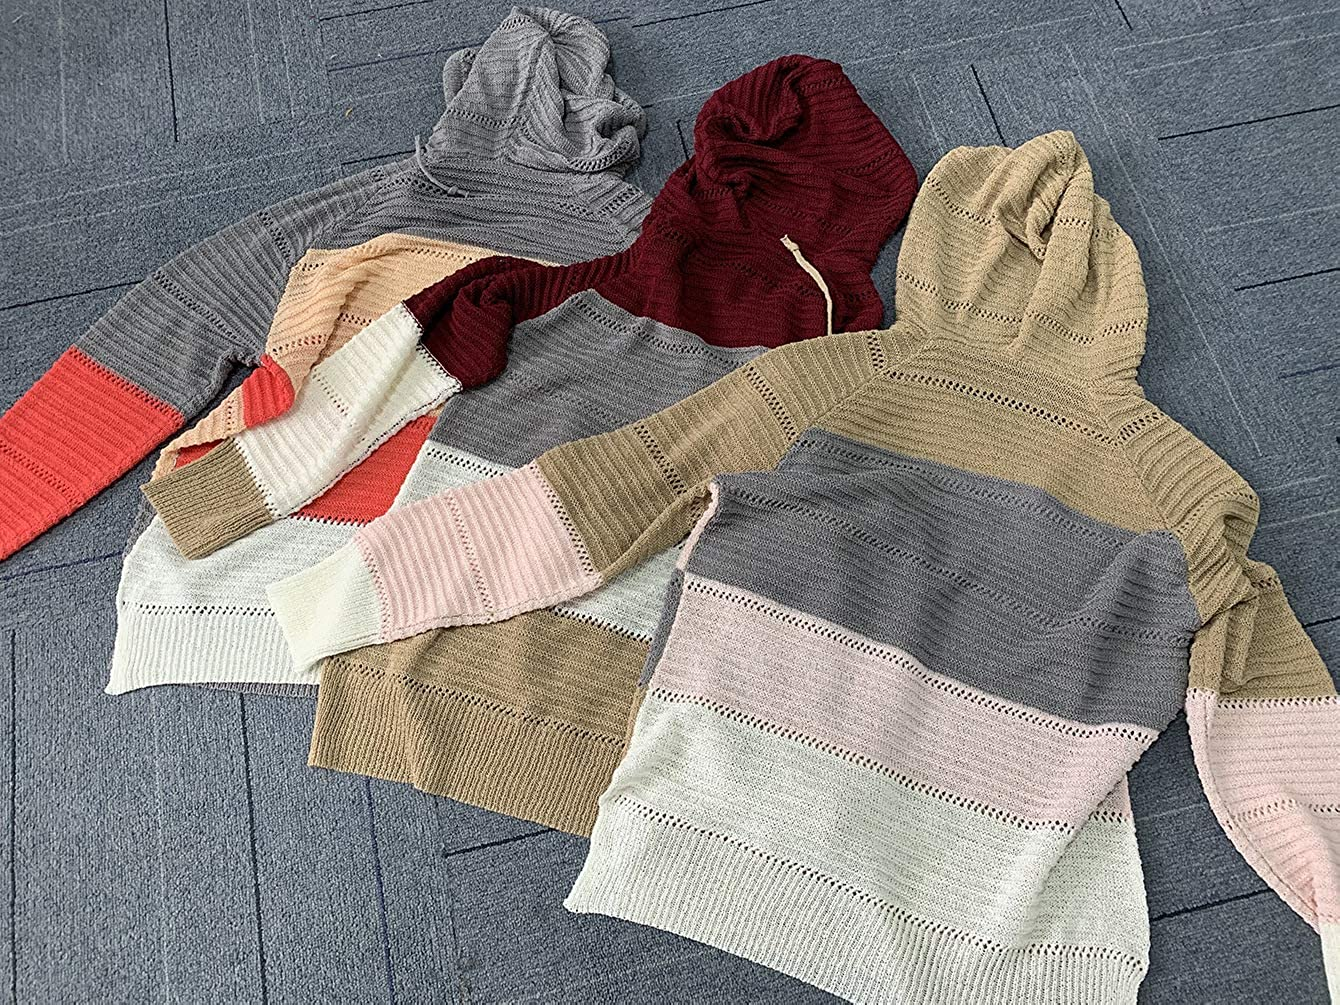 ECOWISH Womens Sweater Striped Knit Color Block V Neck Hoodies Long Sleeve Hollow Out Pullover Casual Sweatshirts Tops